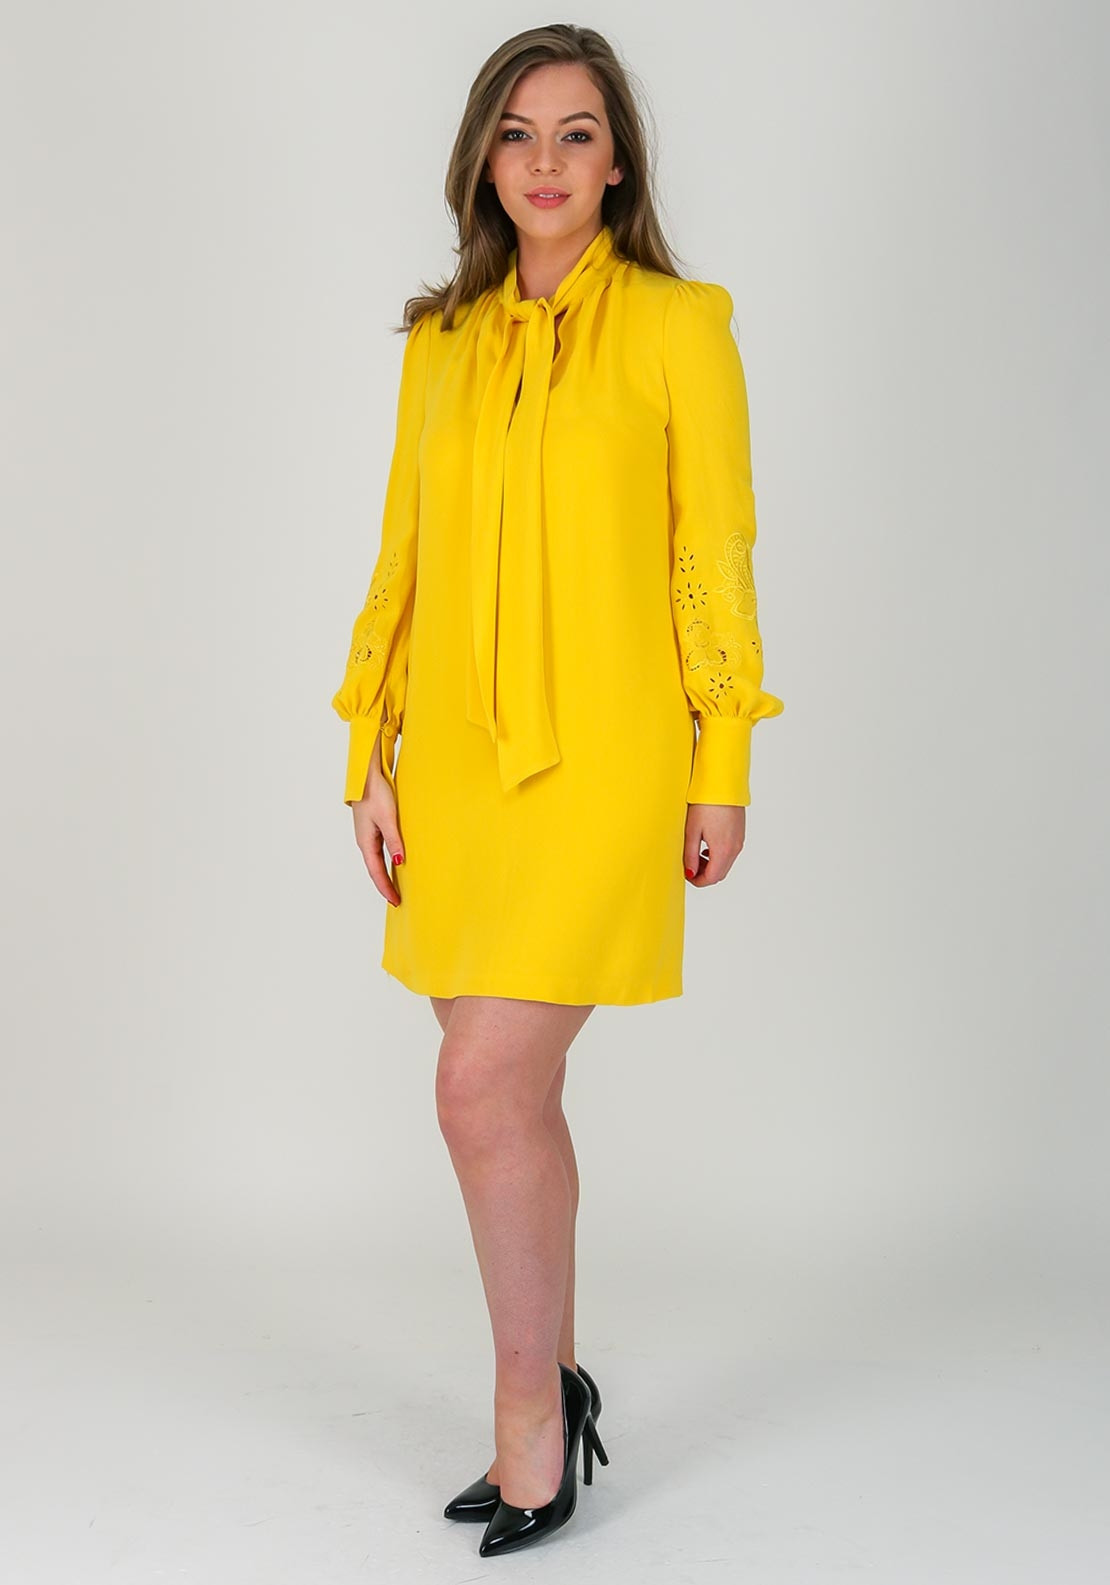 3961025fec0c French Connection Arimi Pussybow Dress, Yellow | McElhinneys